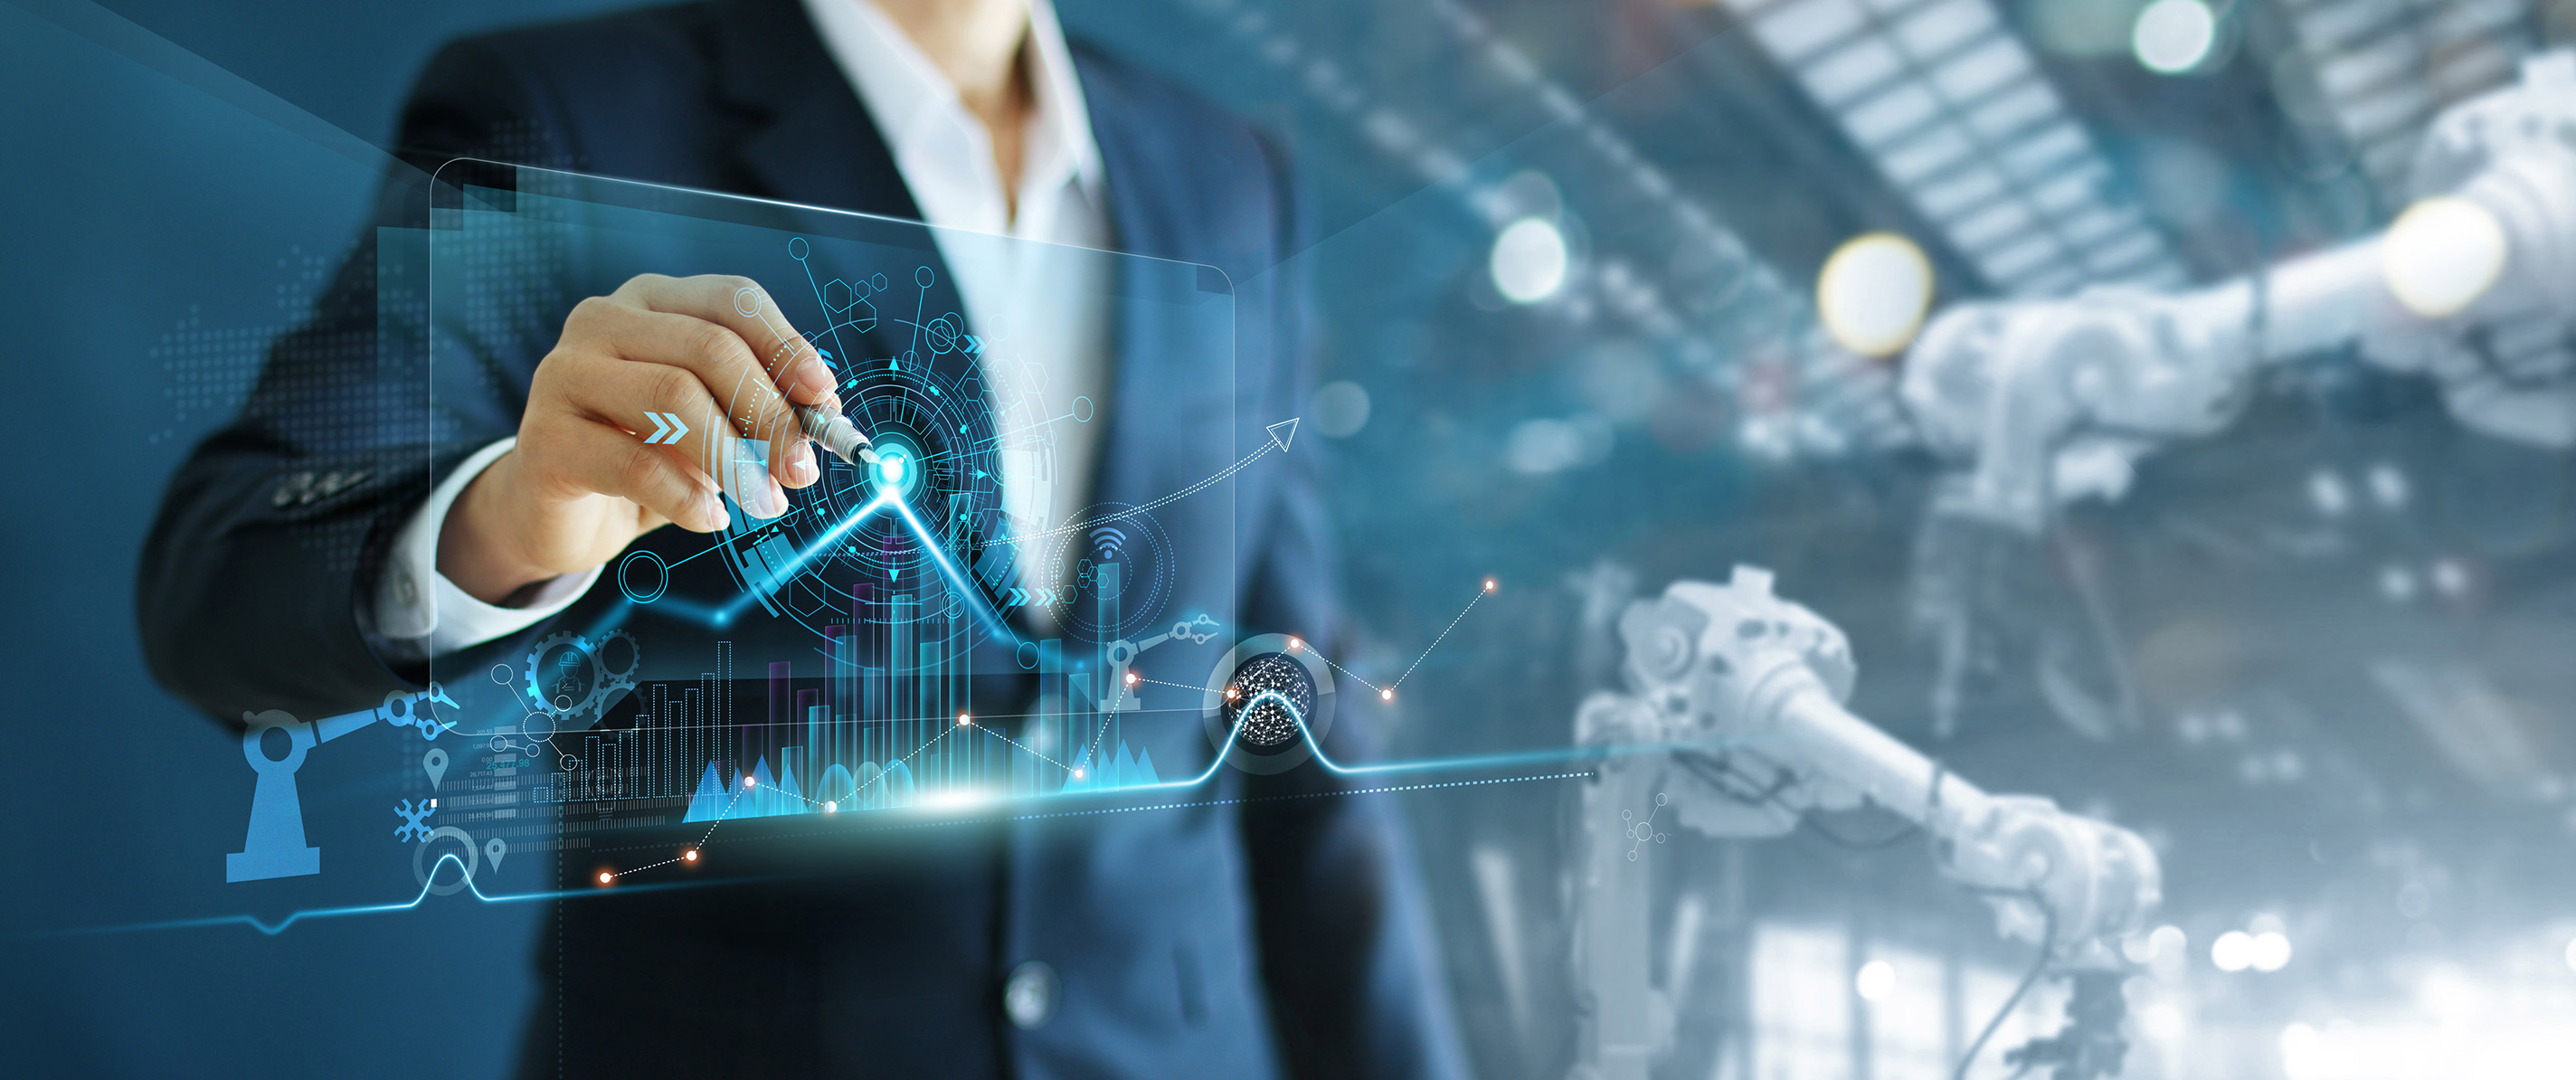 Accelerate Innovation Using Intelligent Business Process Hyper Automation